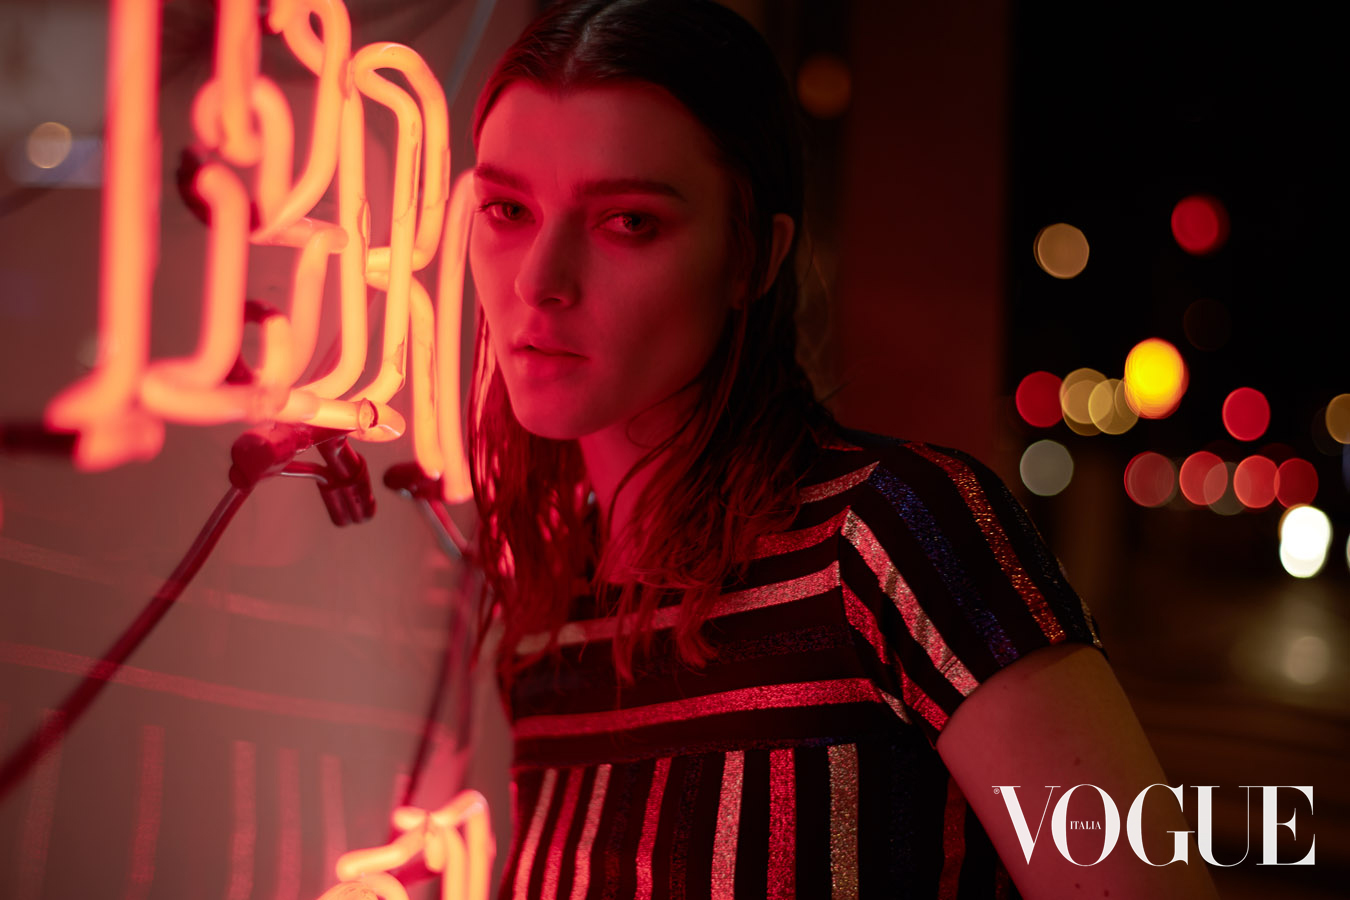 Vogue Italia - It's hard to be ashamed in the city - Styling: Christiane Graf - Hair/MakeUp: Spiri Fountoglou - Model:  Zen Sevastyanova